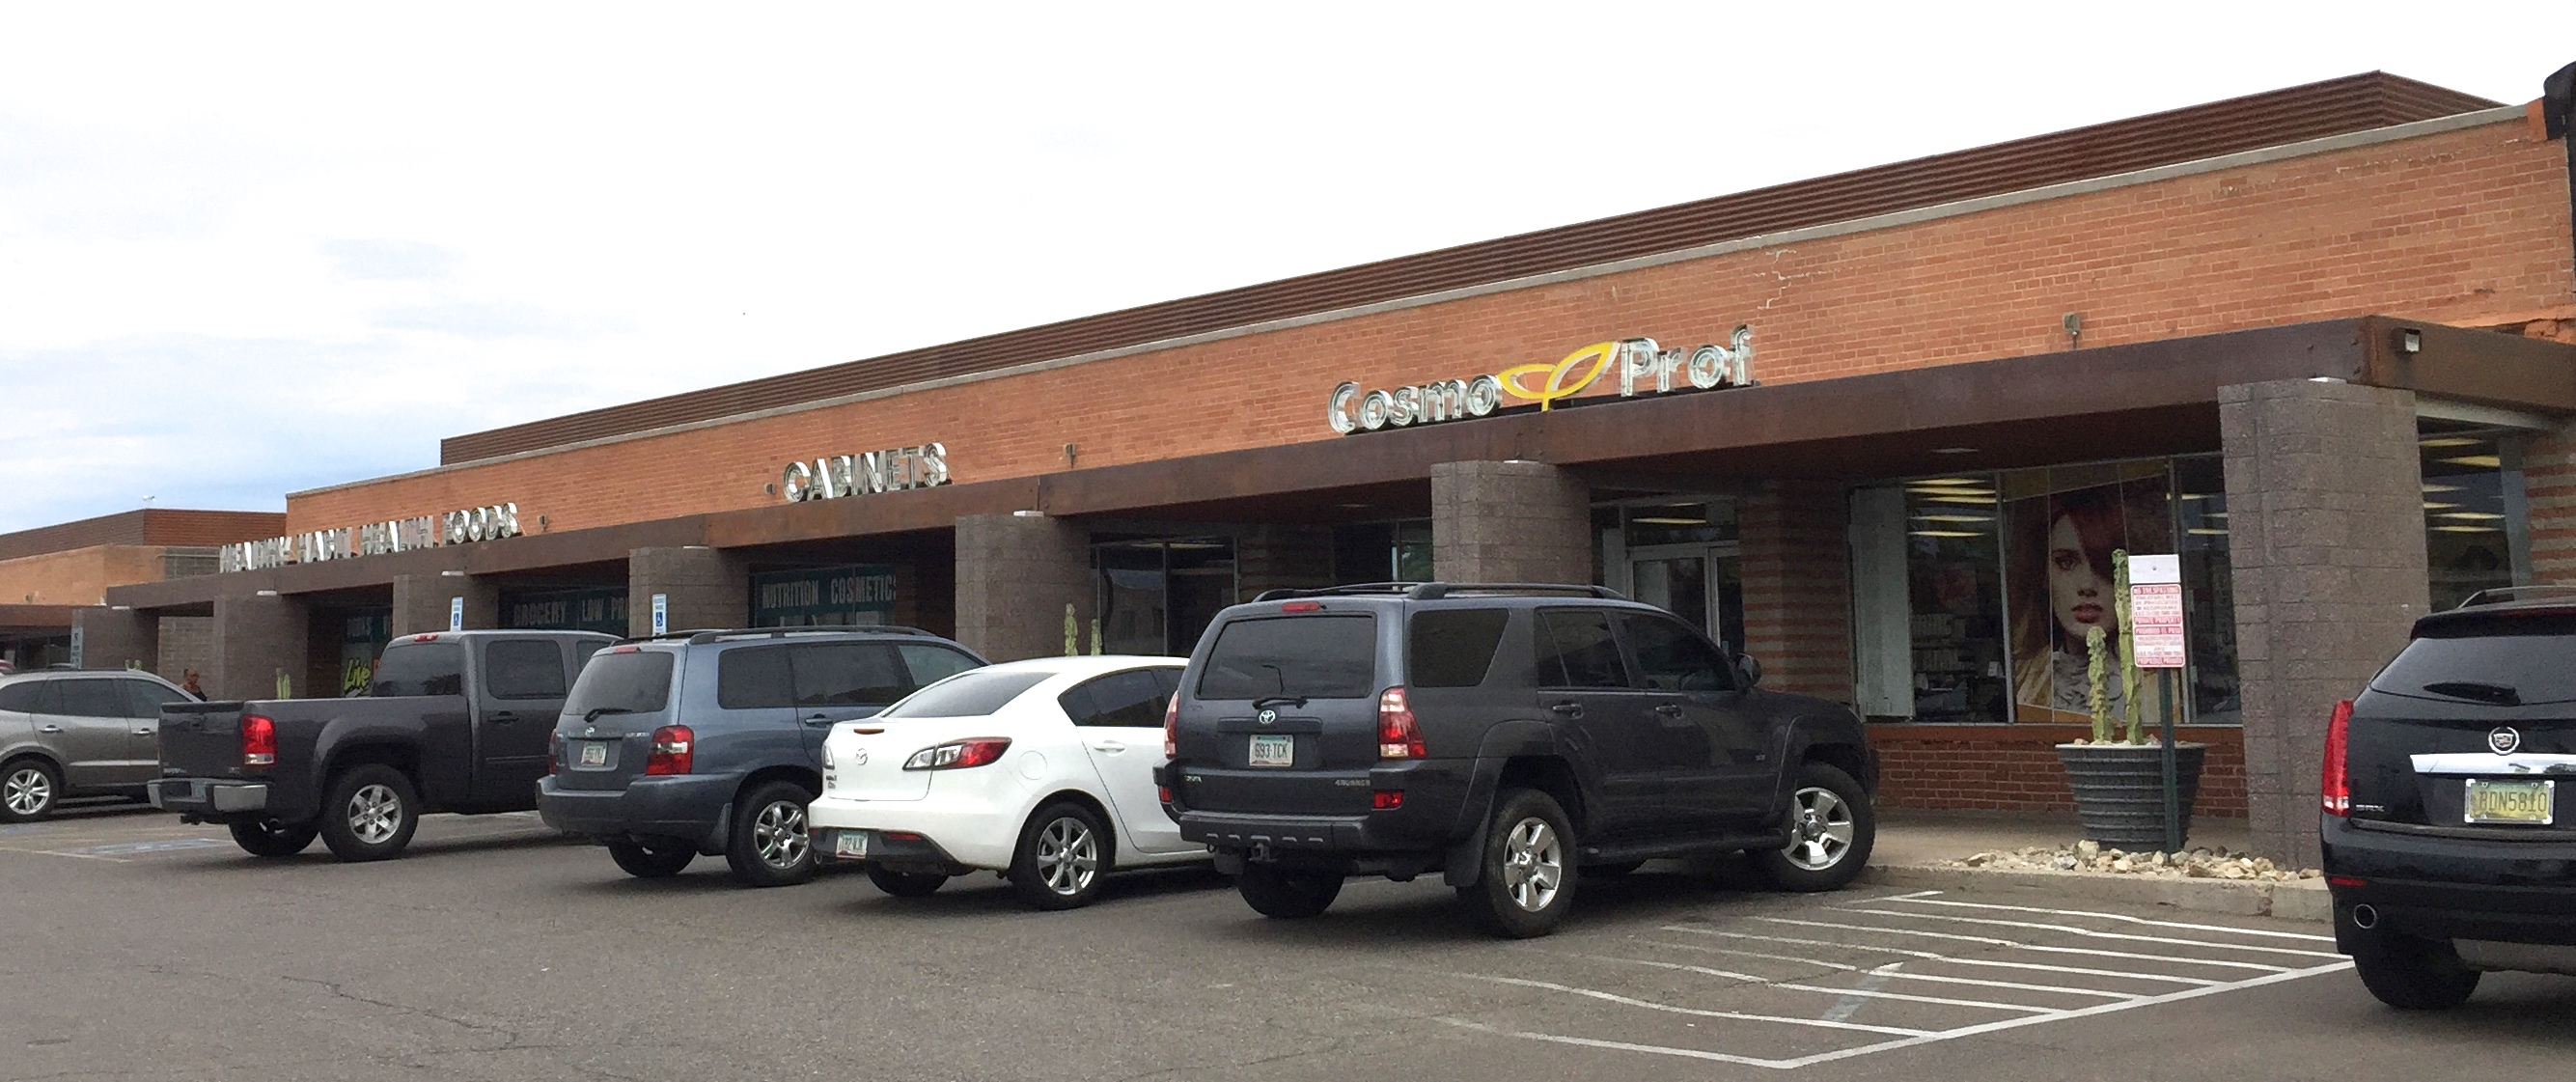 Phoenix Retail Space For Sale